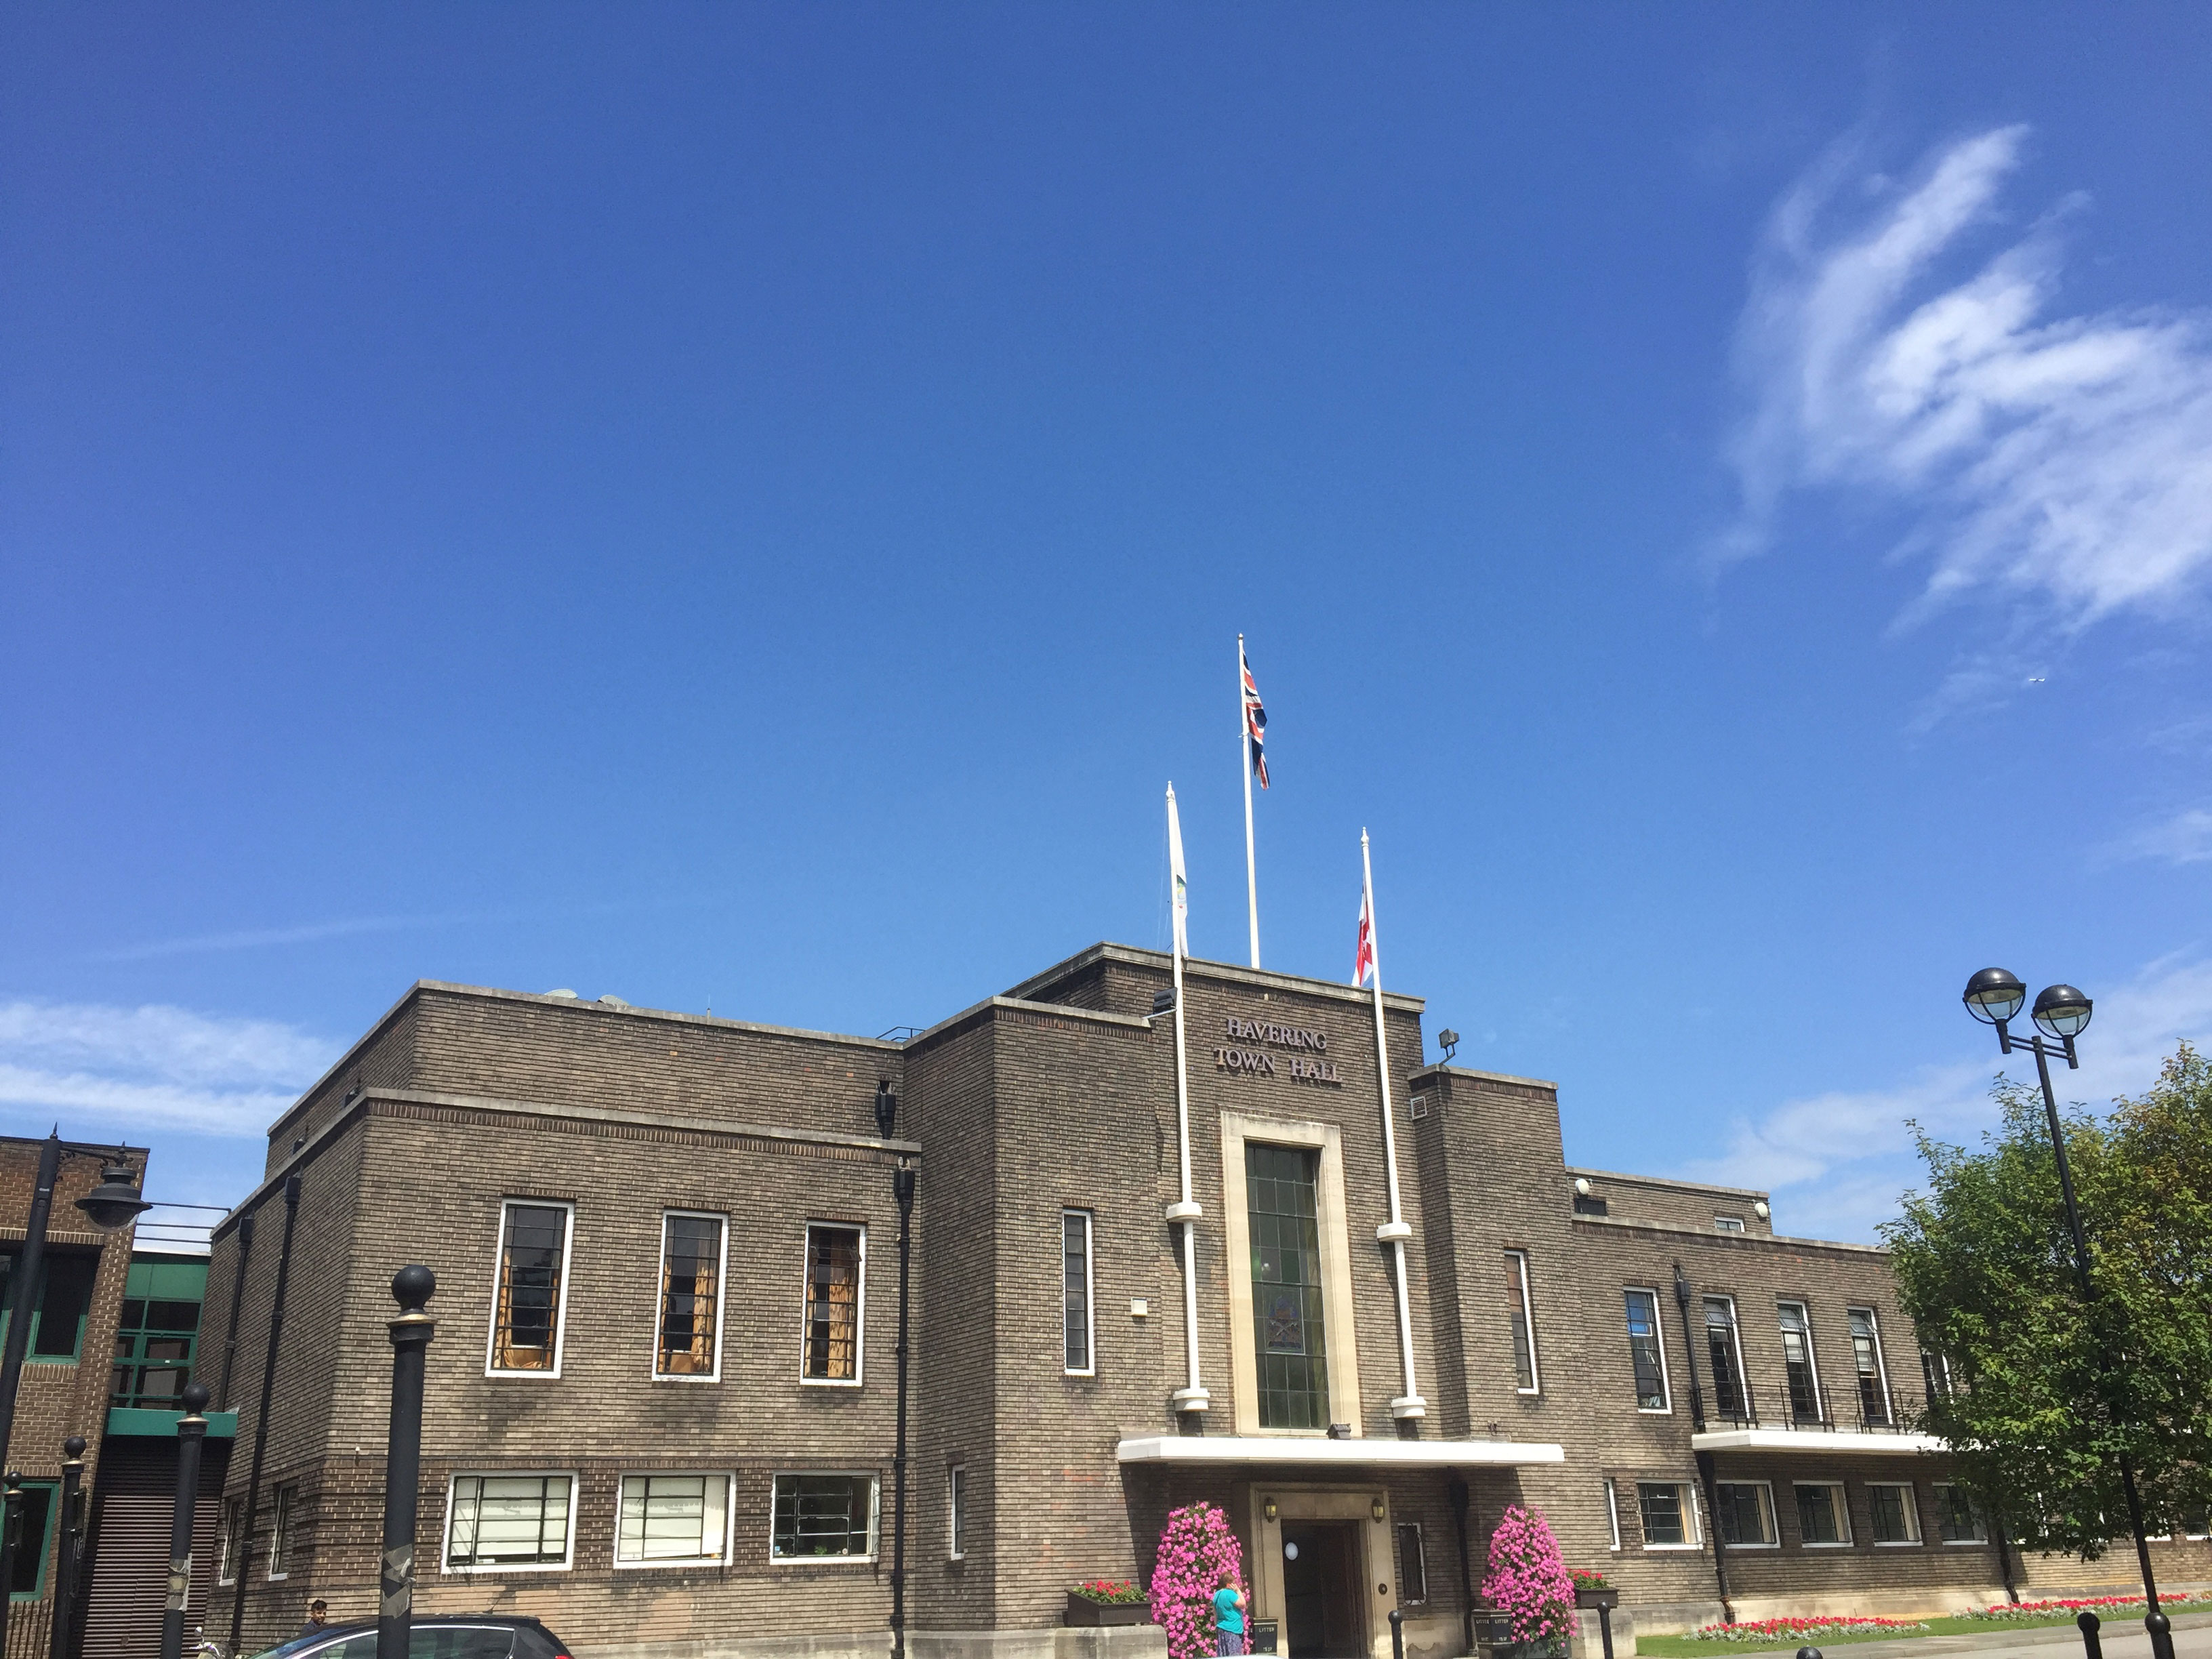 havering-town-hall_2568